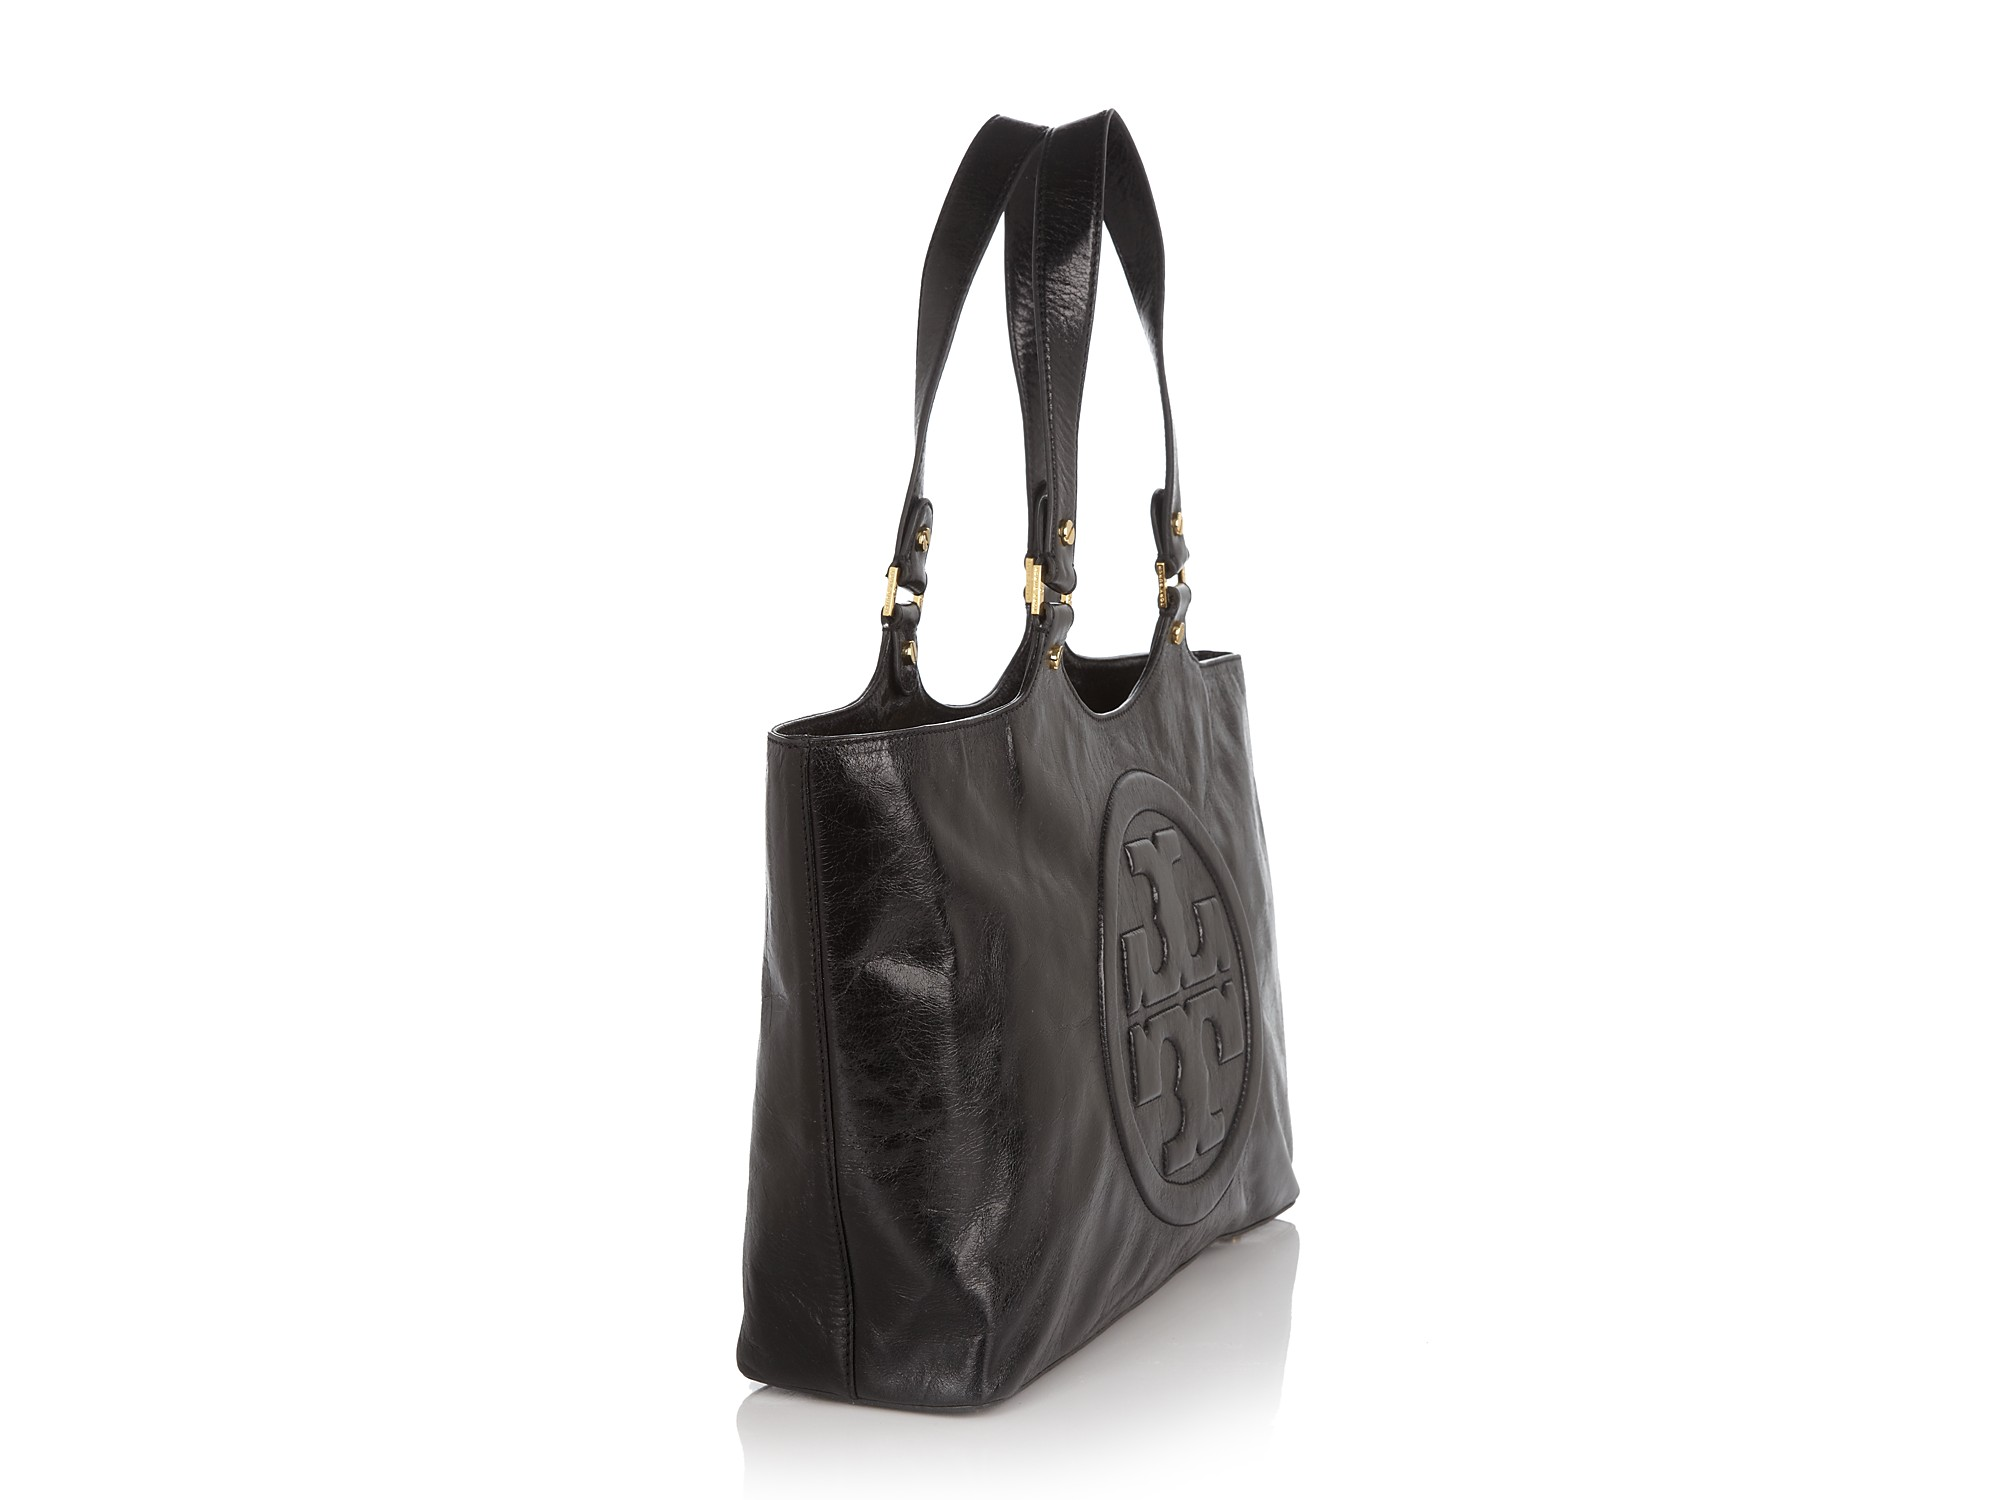 52eea633c0e Lyst - Tory Burch Burch Bombe Leather Tote in Black